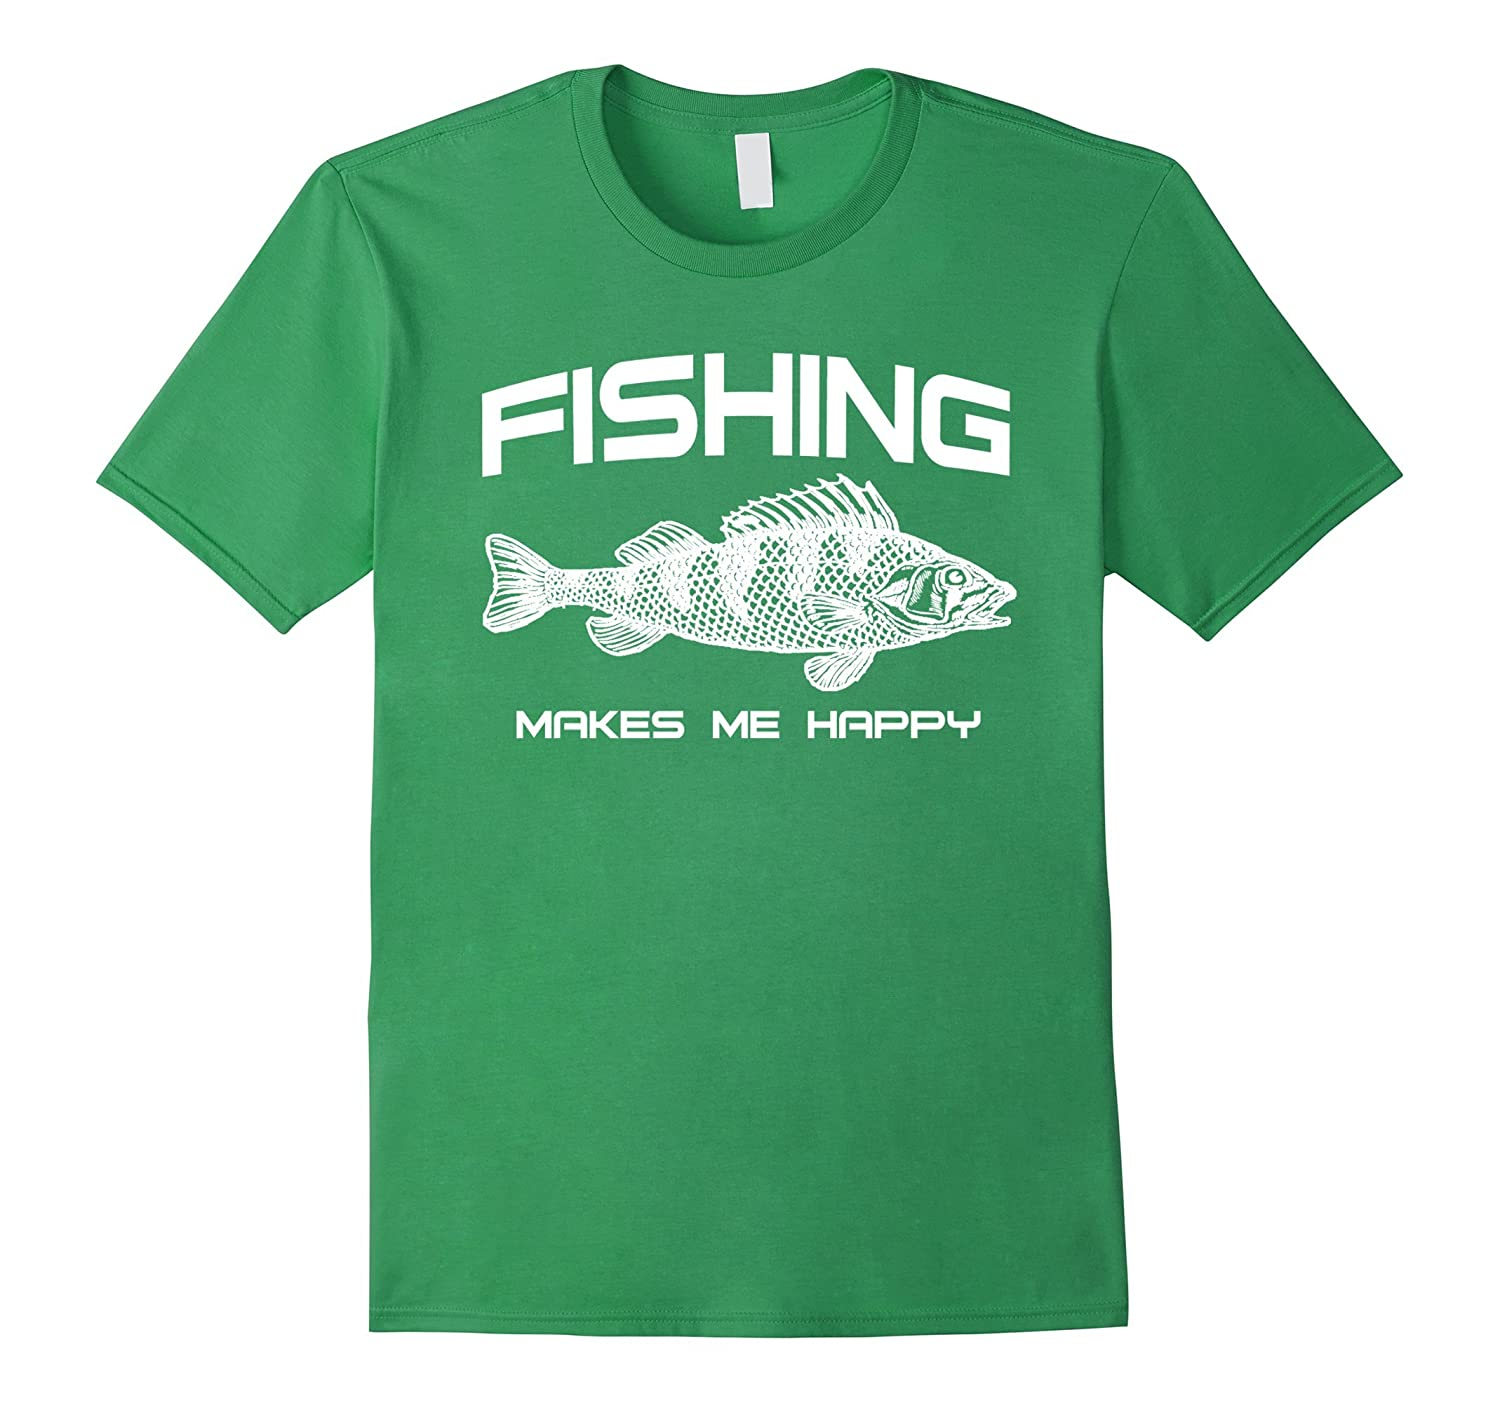 Fish on shirts fishing makes me happy t shirt goatstee for How to get fish smell out of clothes